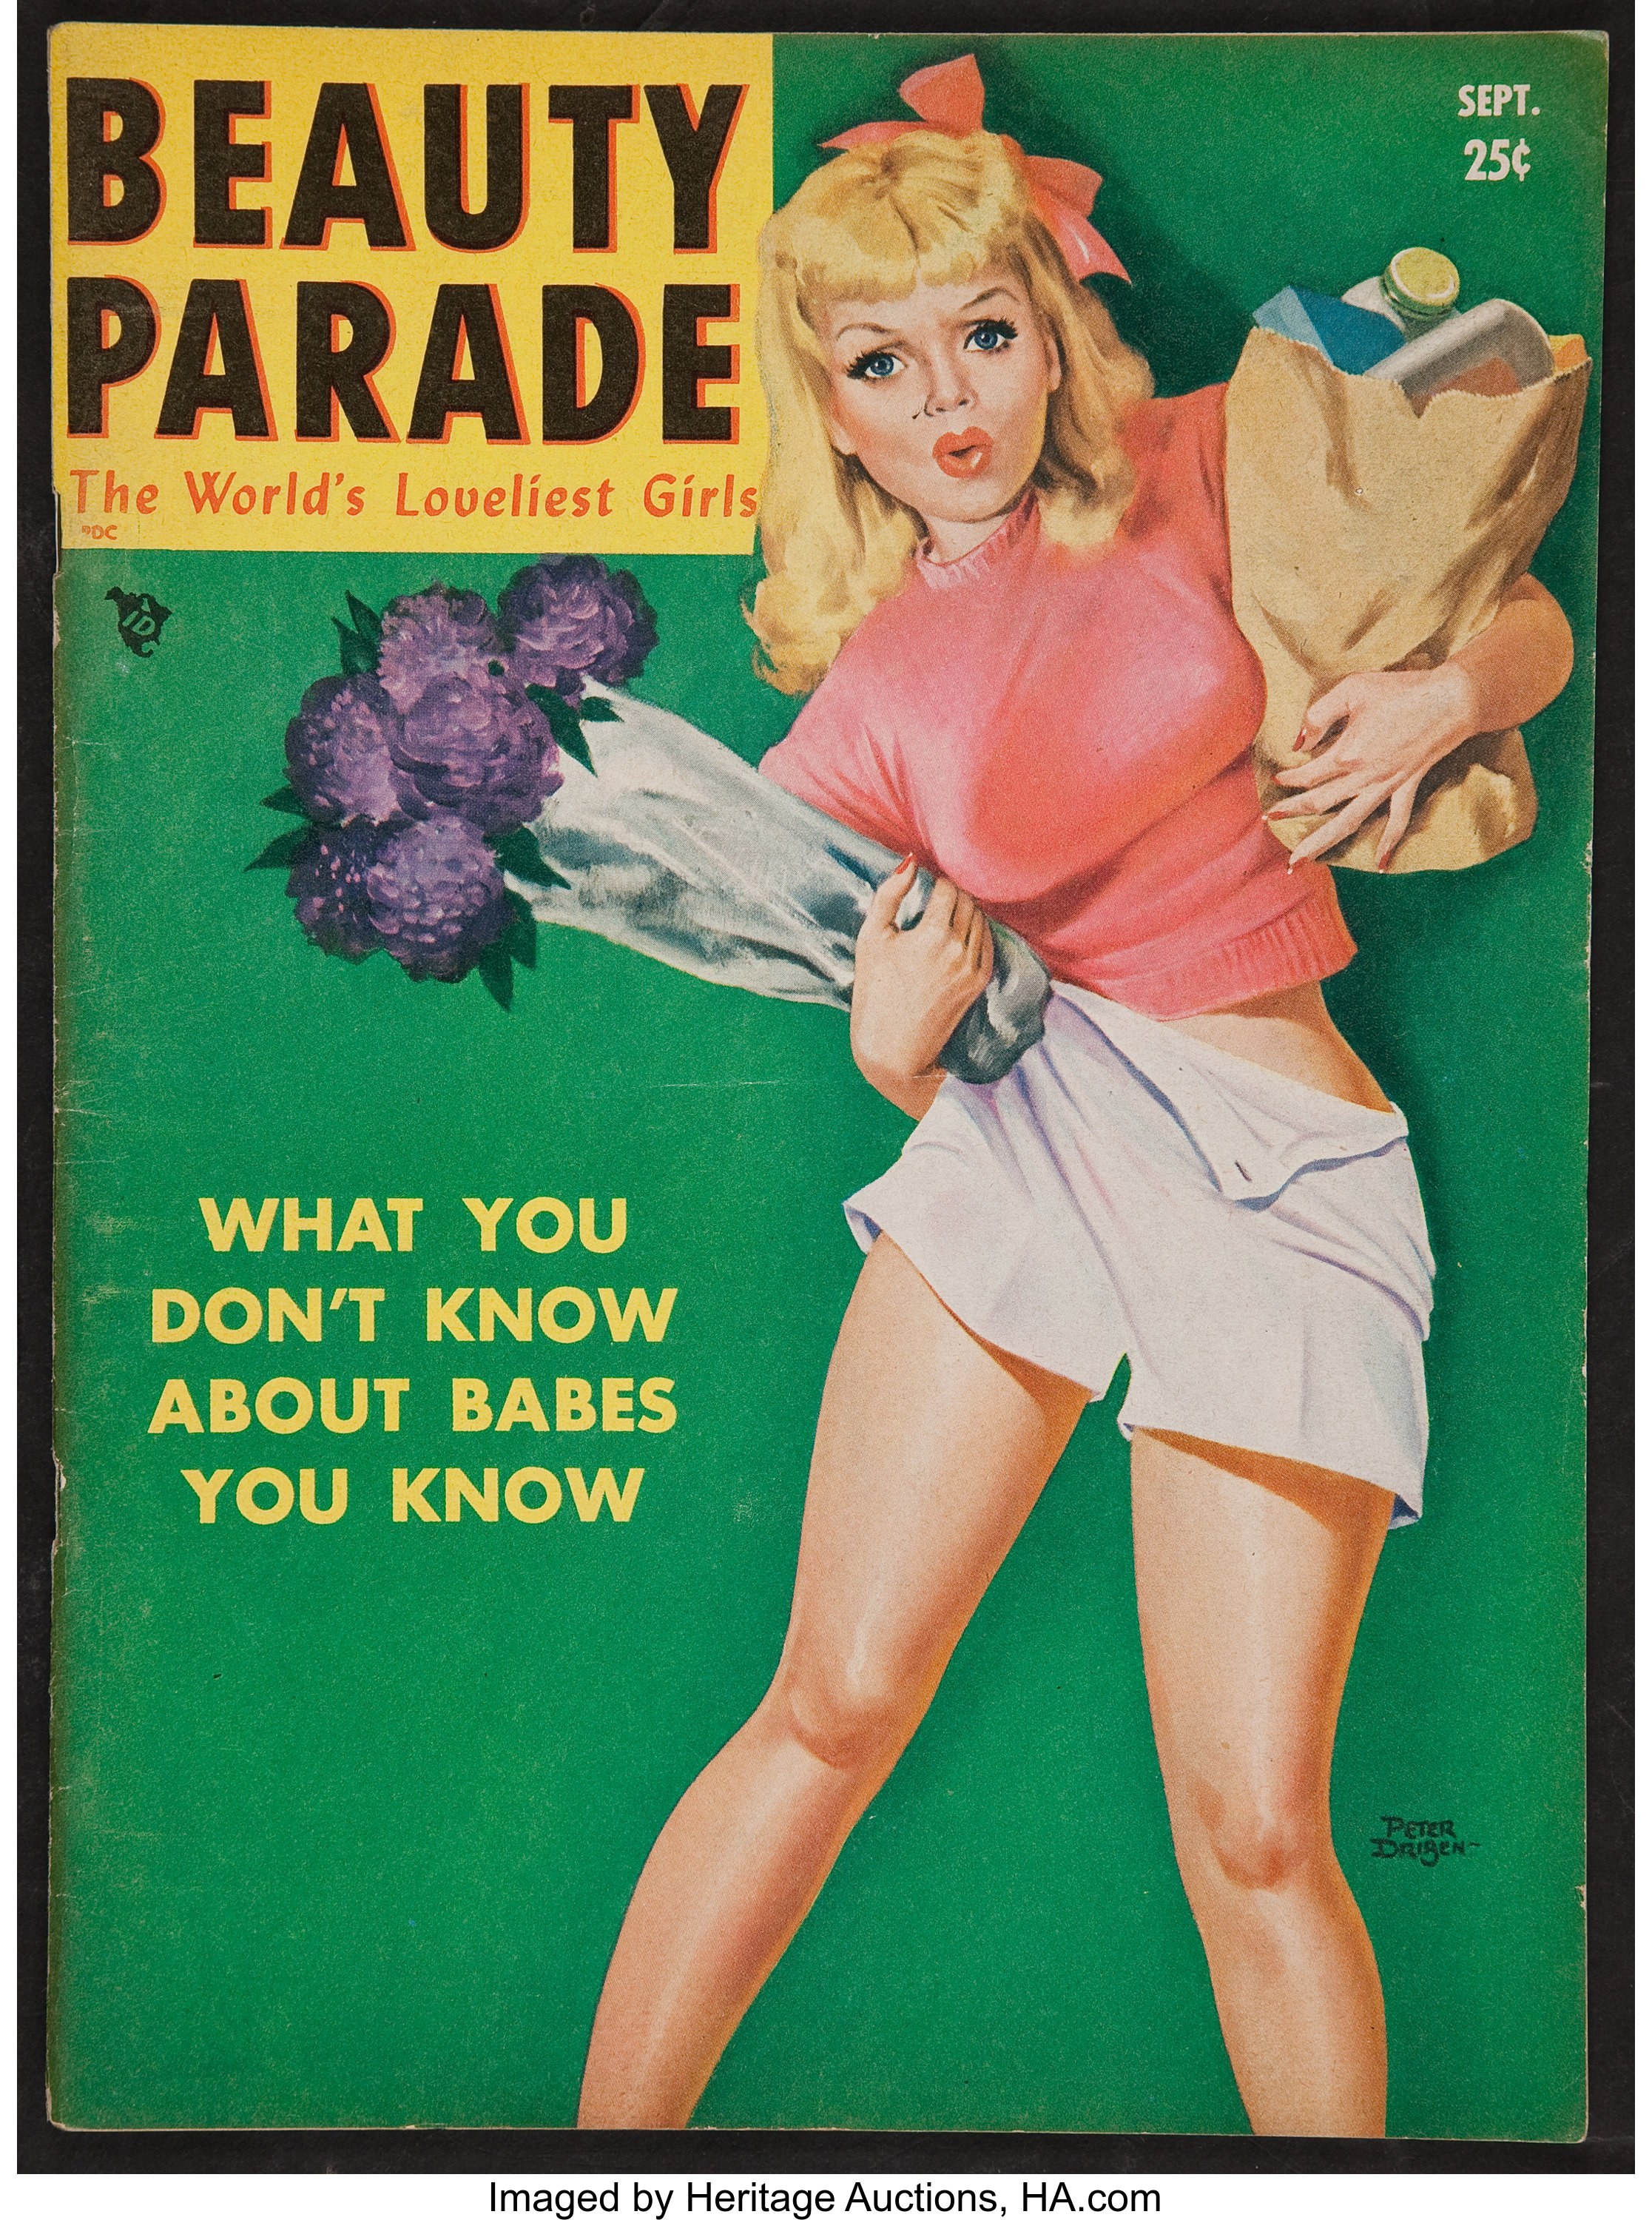 Beauty Parade Sep 1950 Magazine 56 Pages 8 5 X 11 5 Lot 50045 Heritage Auctions